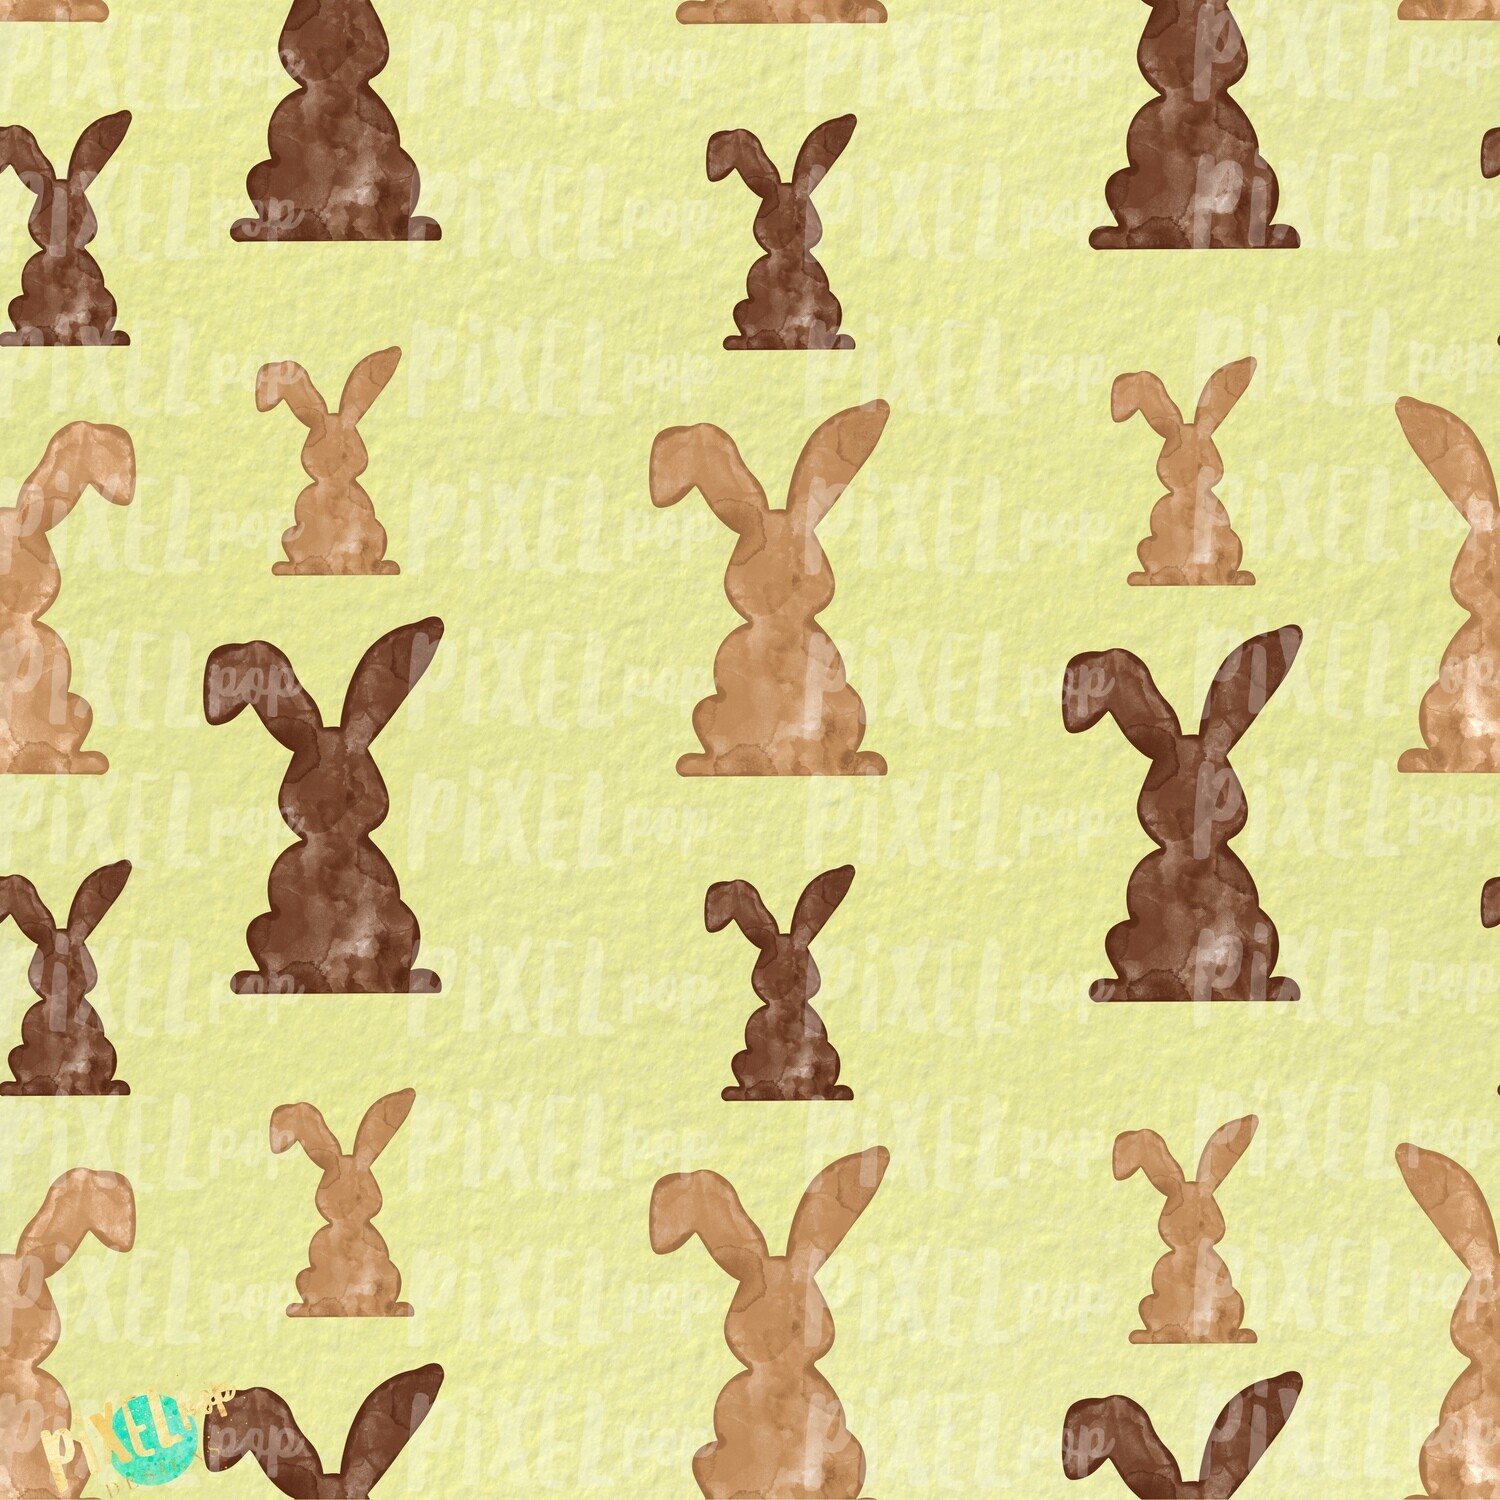 Bunnies Galore Yellow Easter Digital Paper Sublimation PNG   Hand Painted Art   Sublimation PNG   Digital Download   Digital Scrapbooking Paper